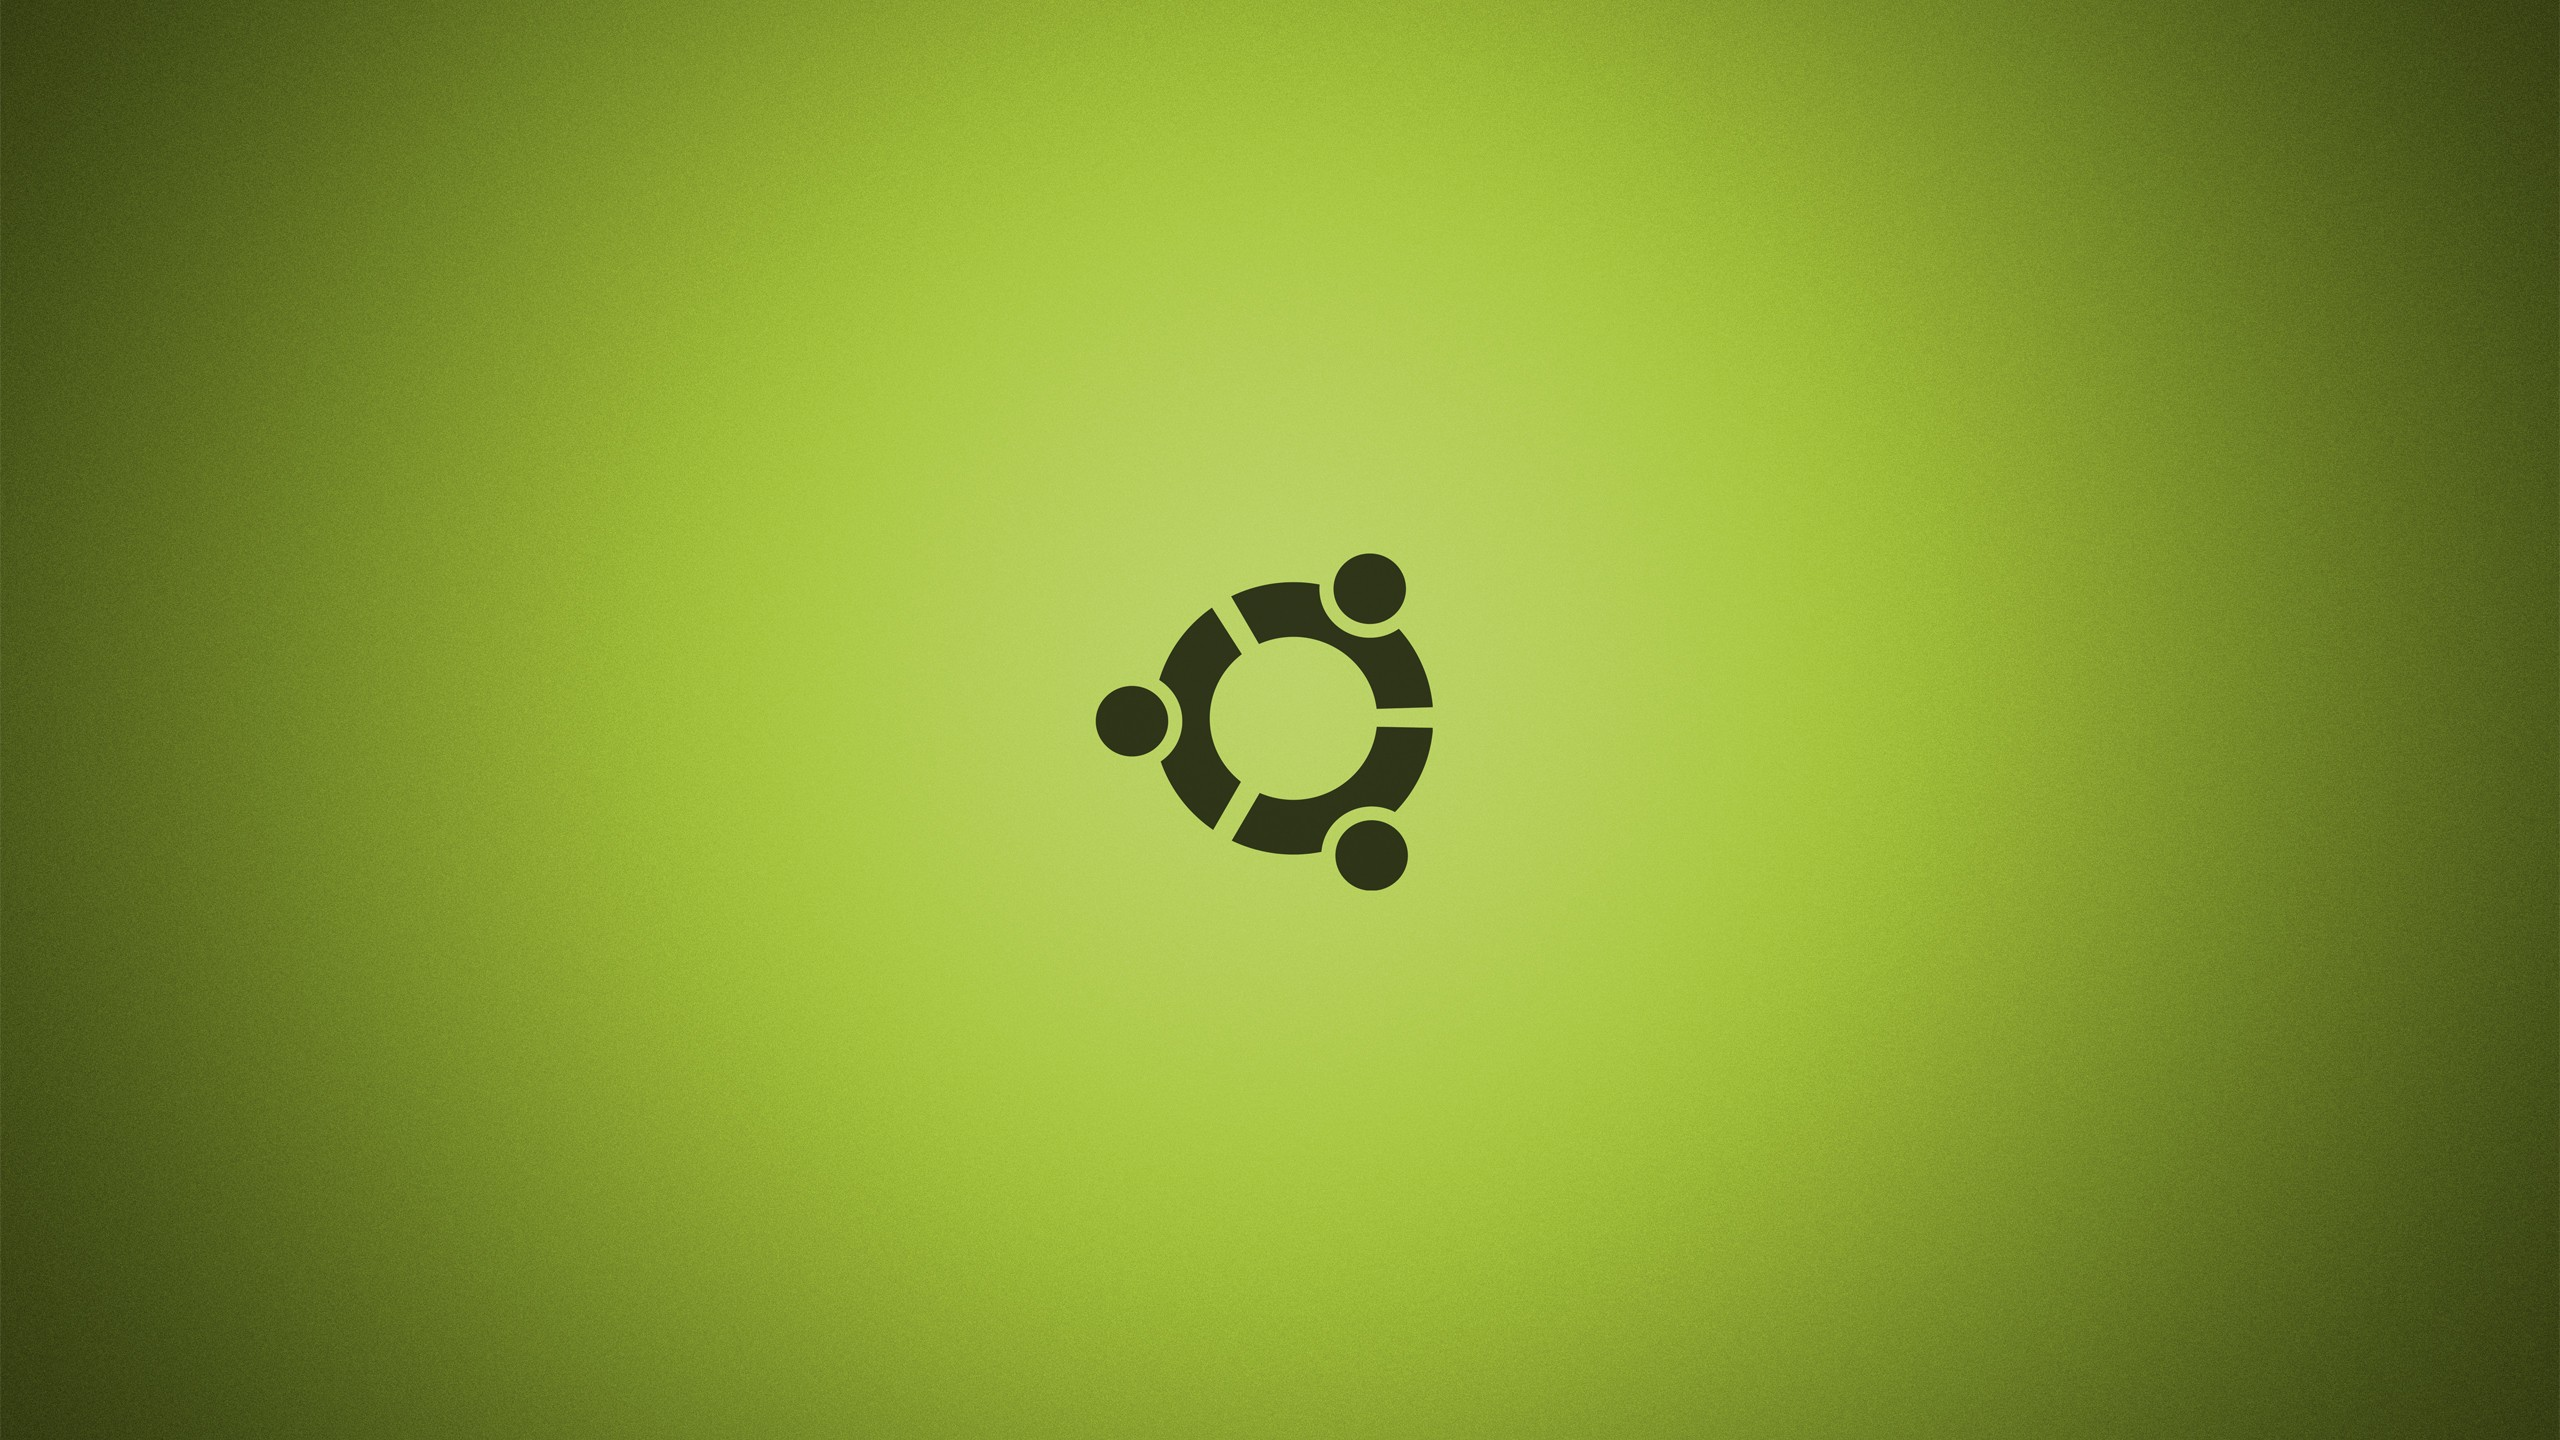 Green Ubuntu Wallpaper